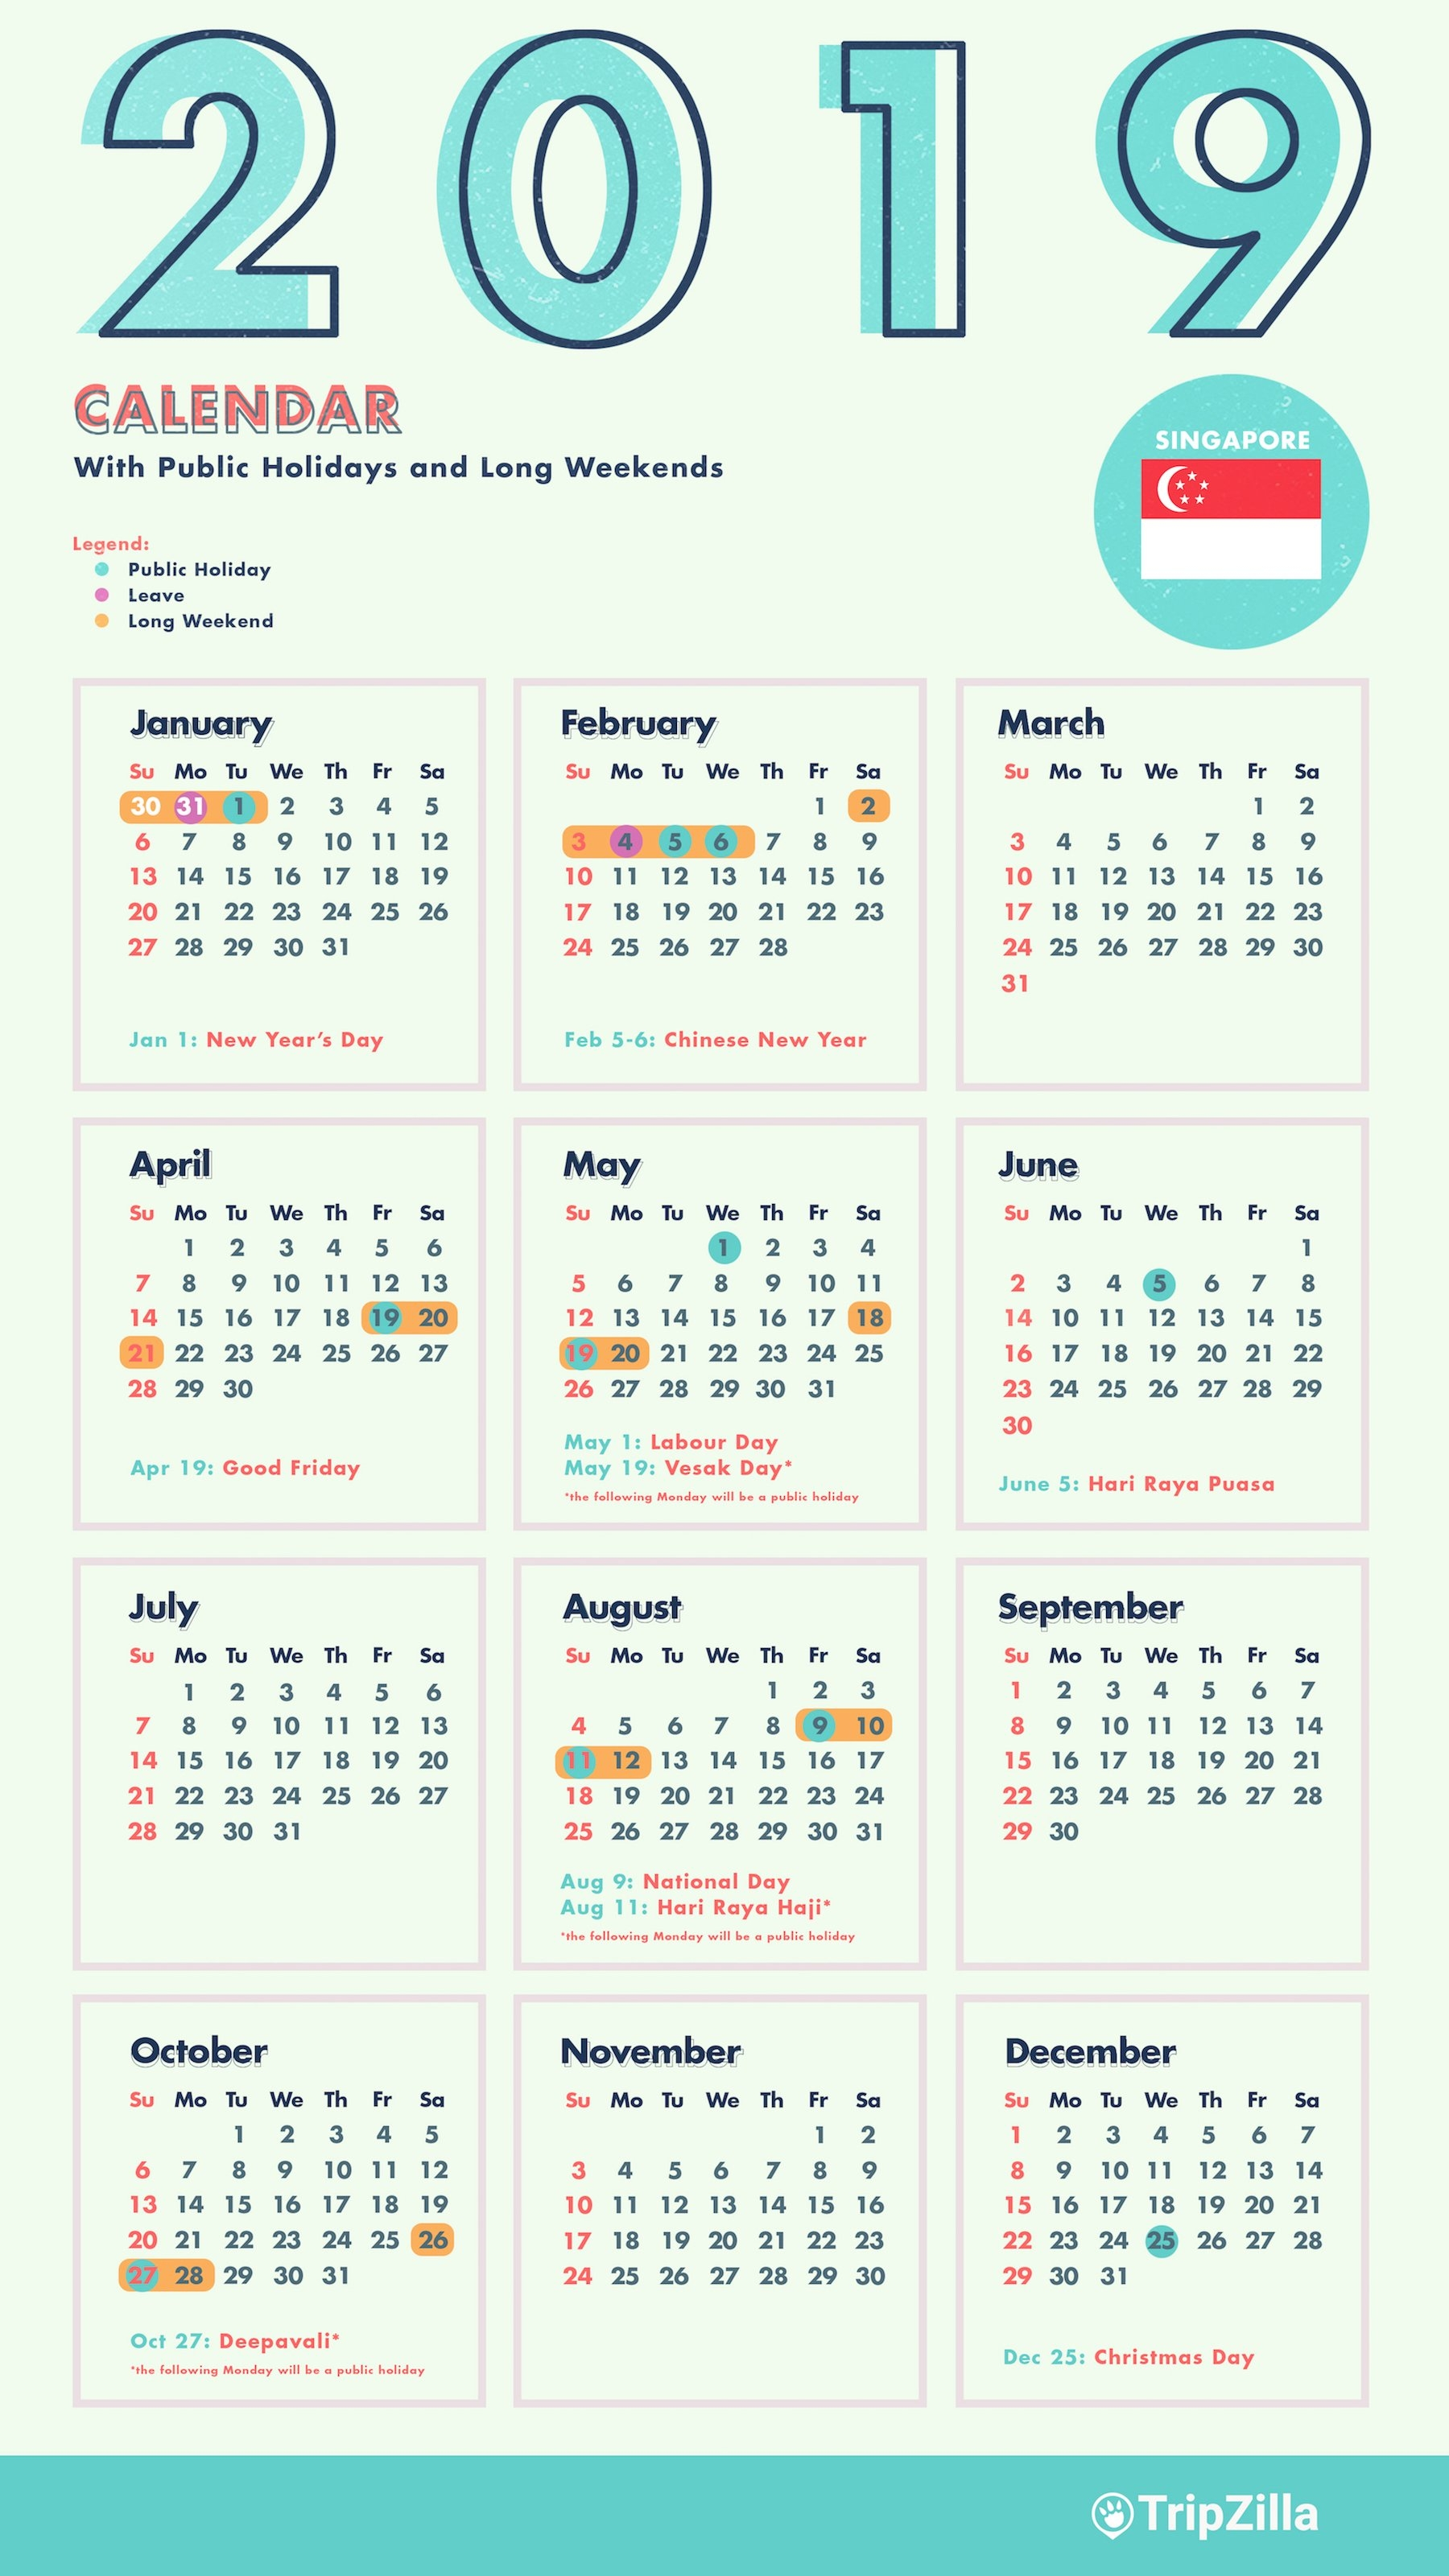 6 Long Weekends In Singapore In 2019 (Bonus Calendar & Cheatsheet) Calendar 2019 Bank Holidays